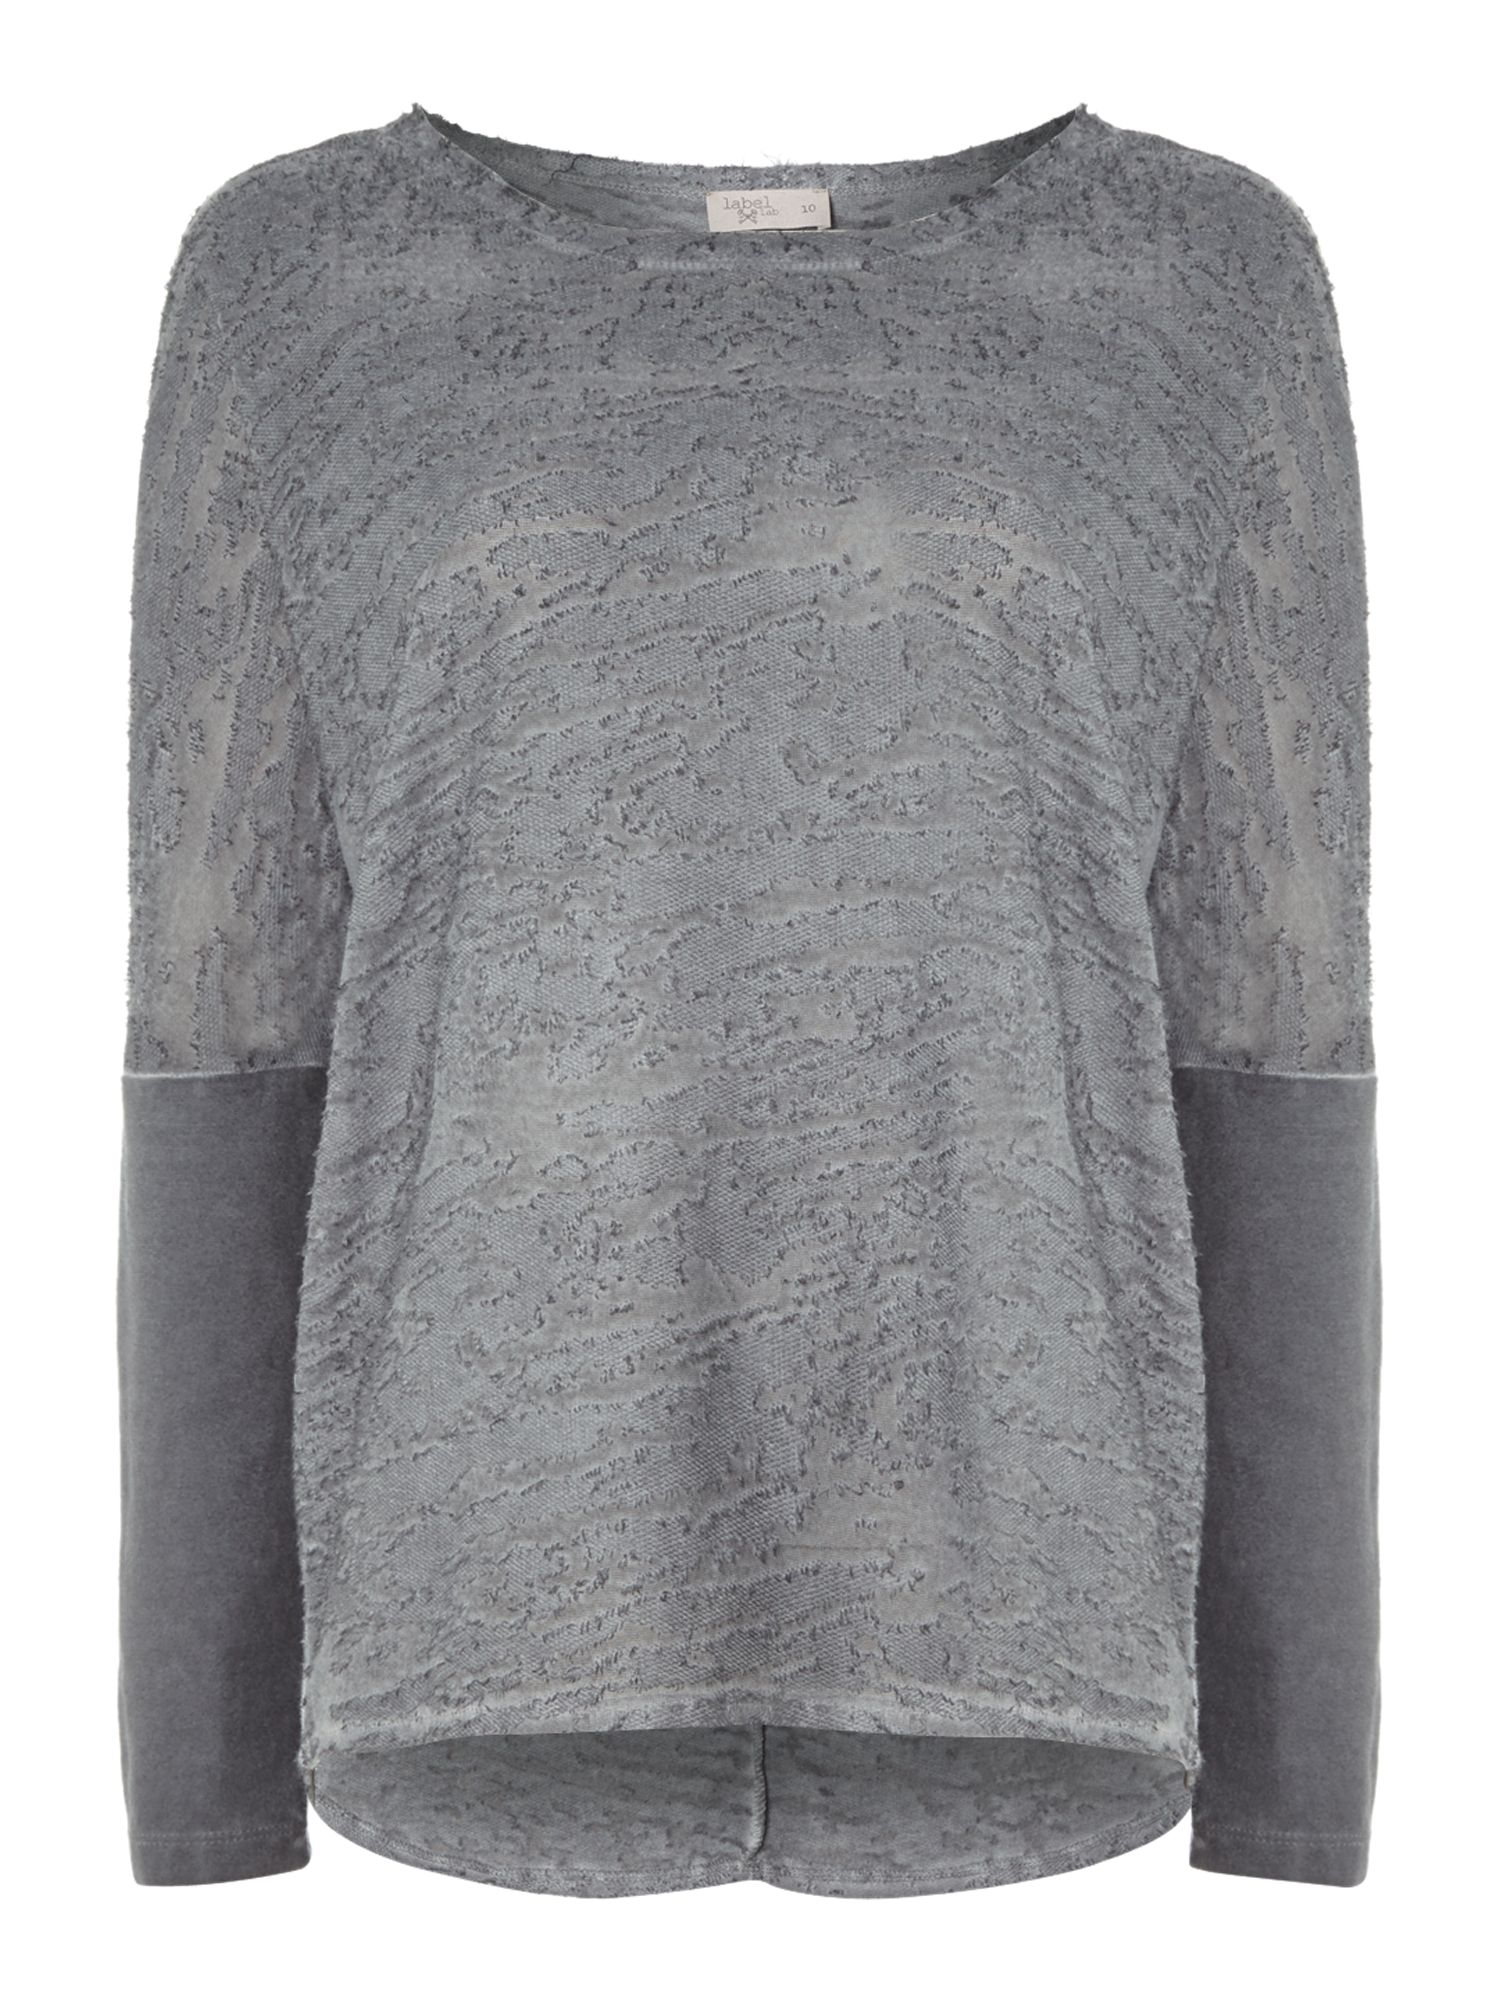 Burnout batwing jersey top